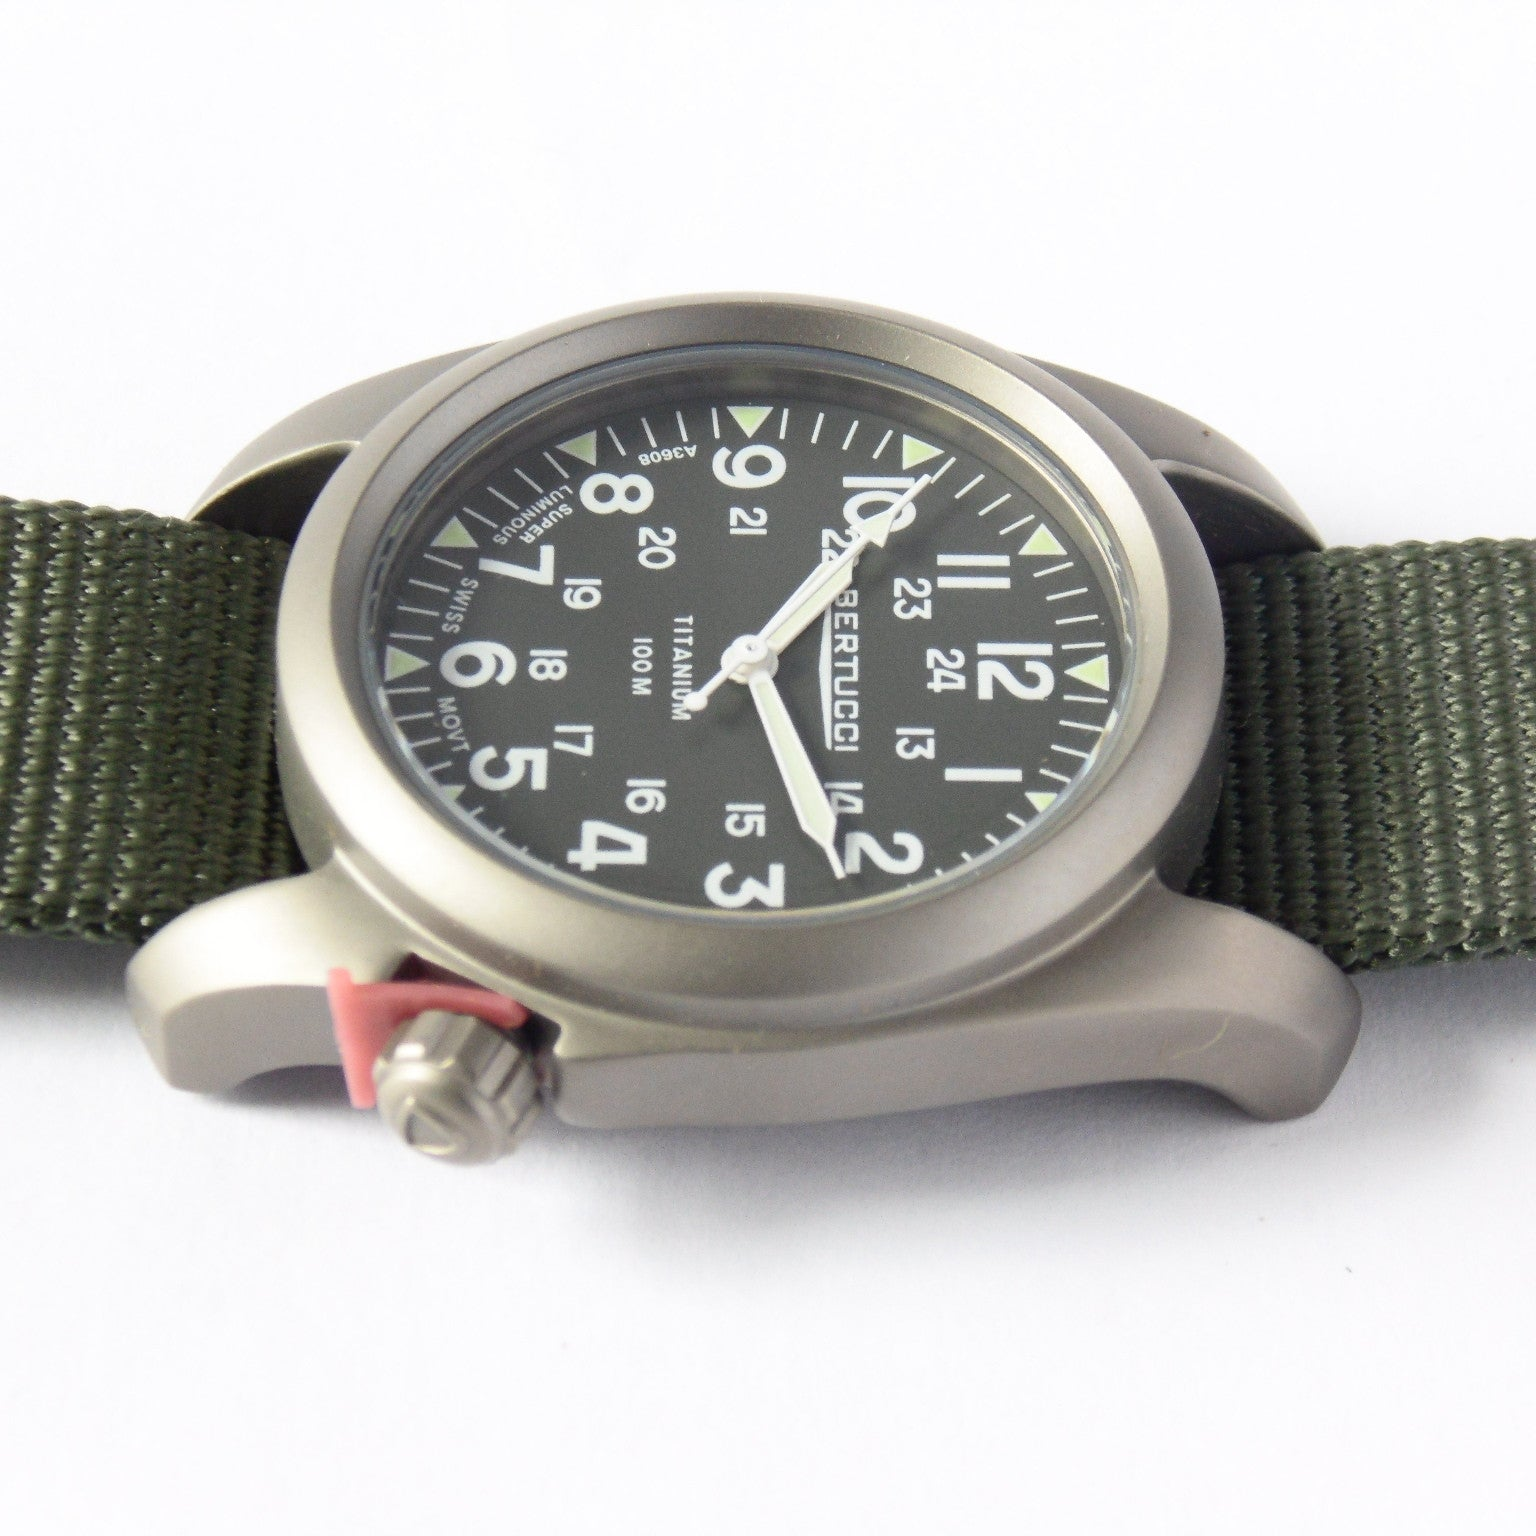 Bertucci A-2T Vintage Marine Green Titanium Watch with Olive Drab Nylon Strap 12030 - Watchfinder General - UK suppliers of Russian Vostok Parnis Watches MWC G10  - 4